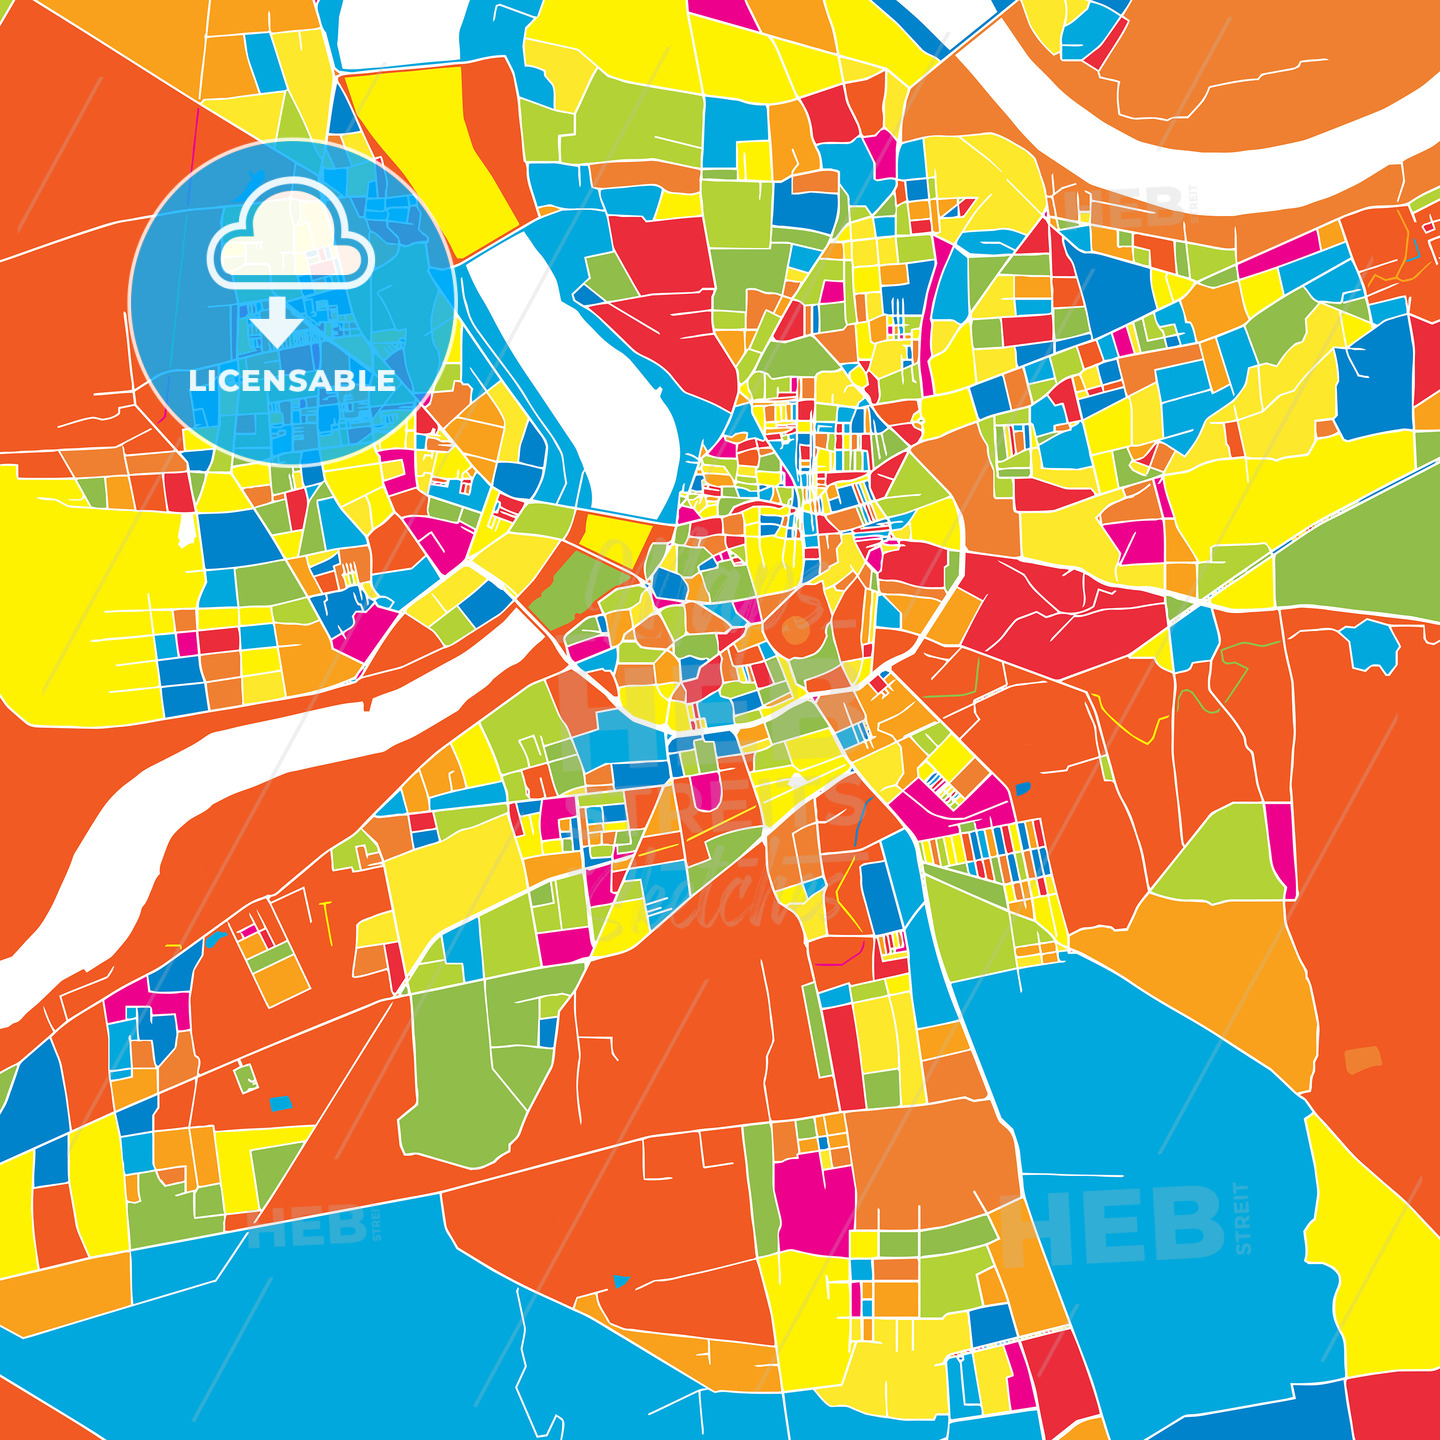 Surat India Colorful Vector Map